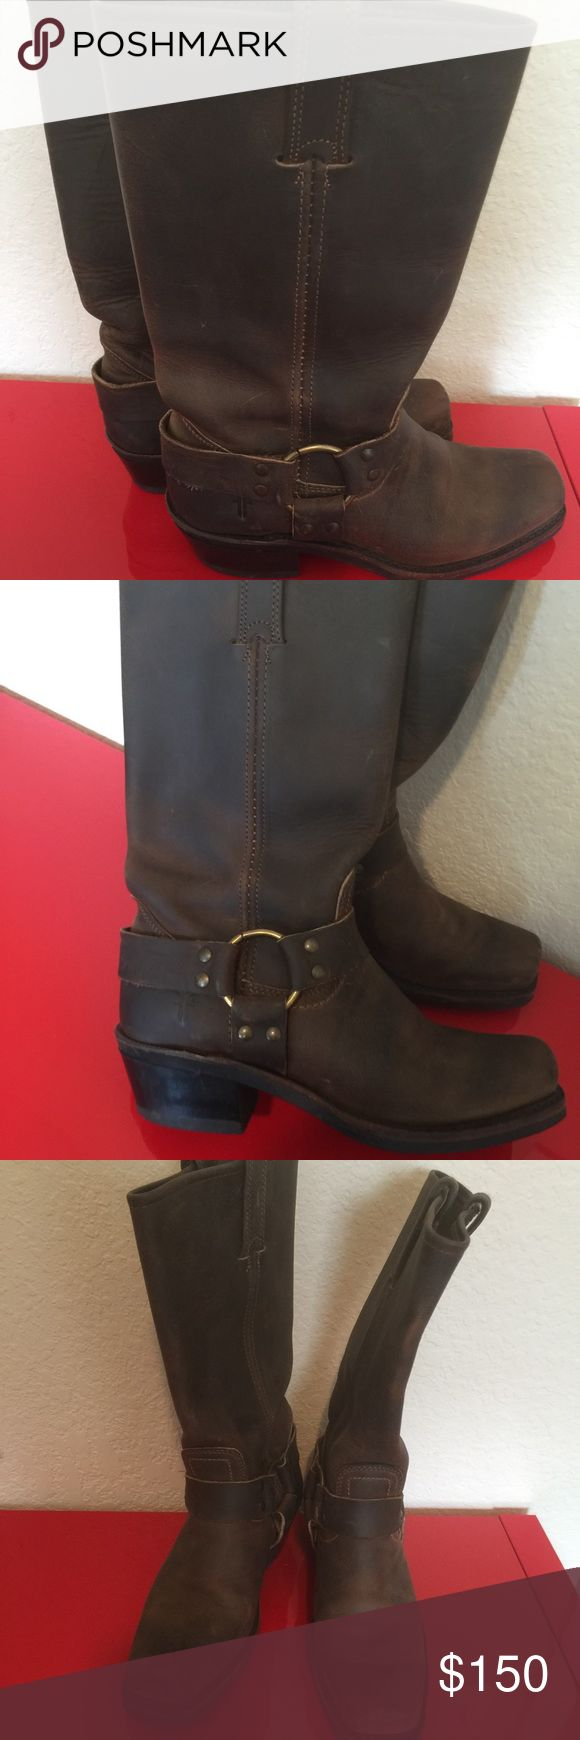 Frye harness boots brown 6